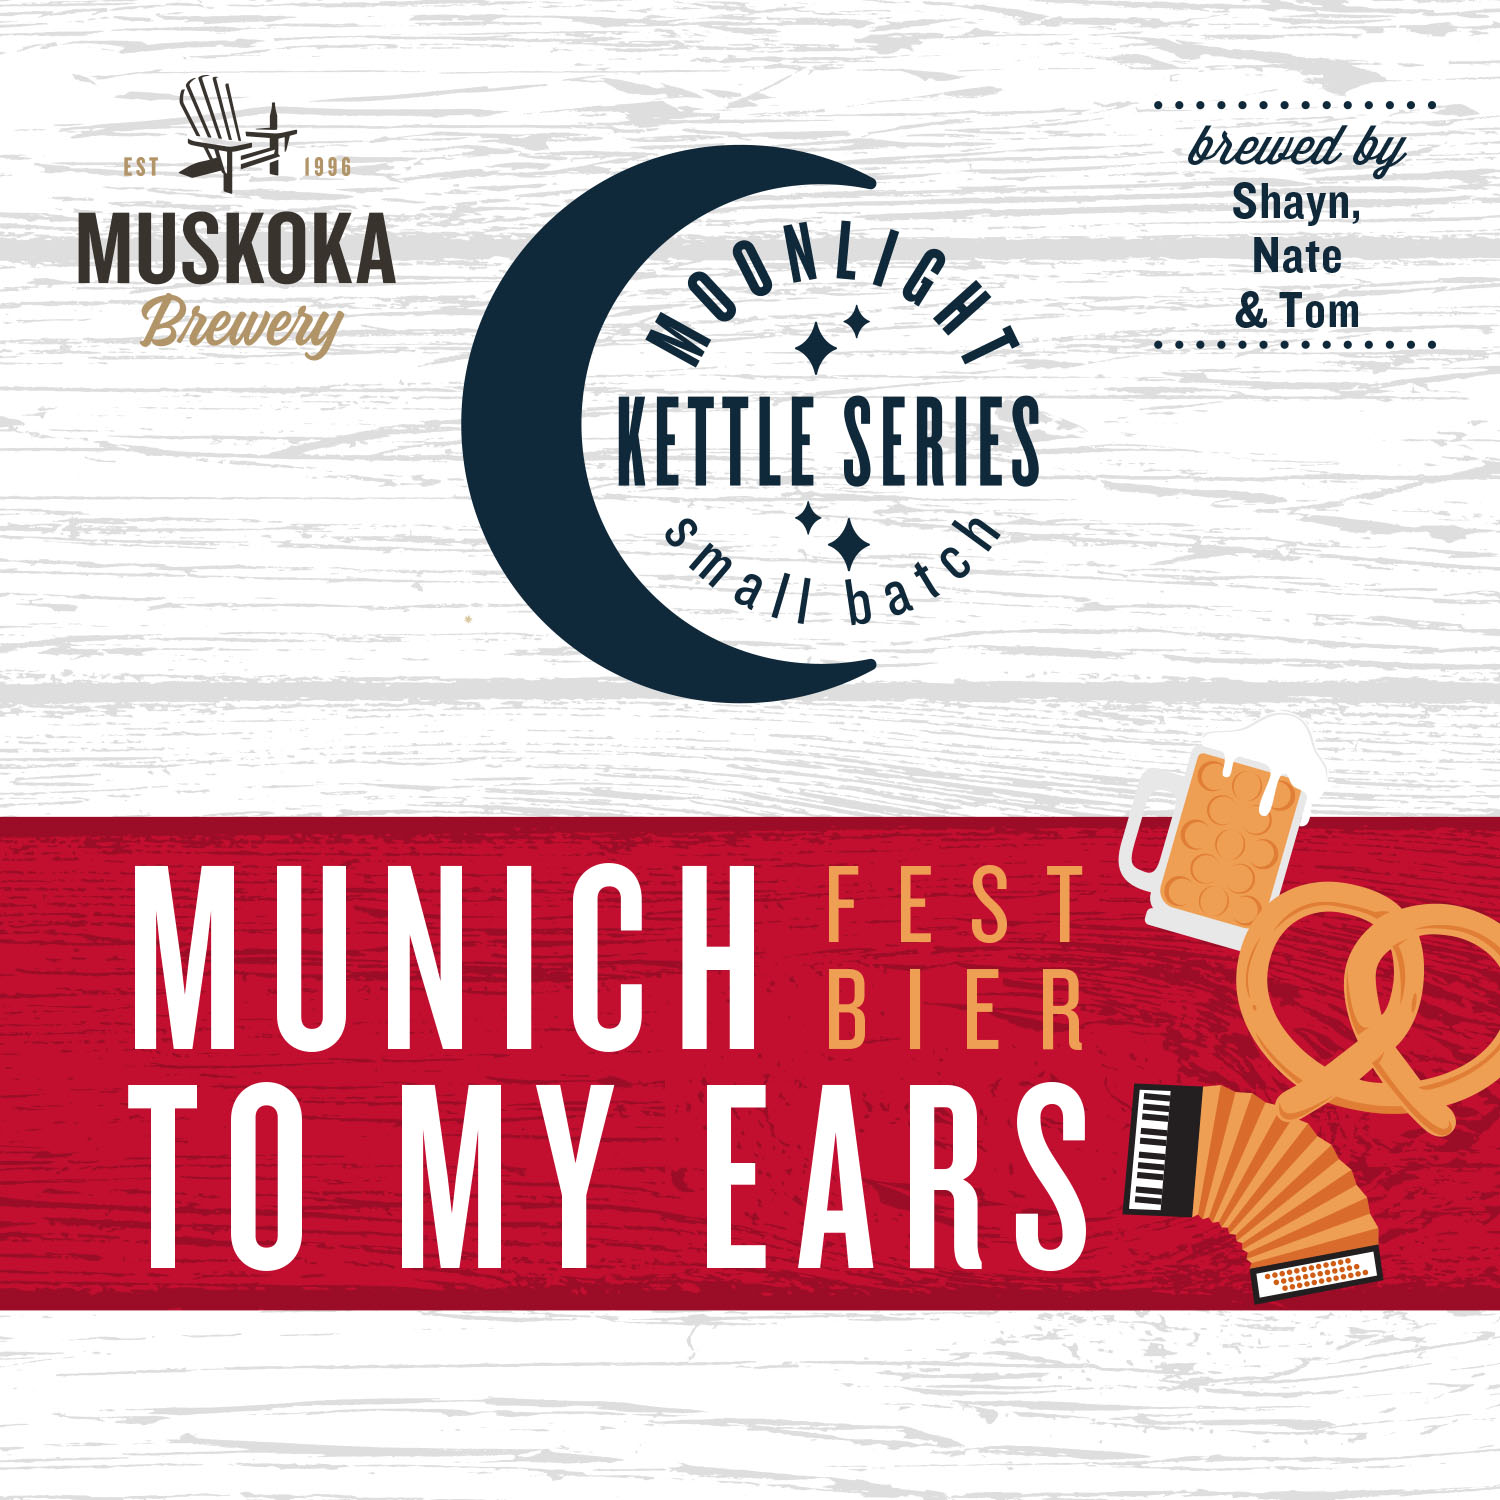 Moonlight Kettle Series: Munich to My Ears Festbier by Shayn, Tom and Nate